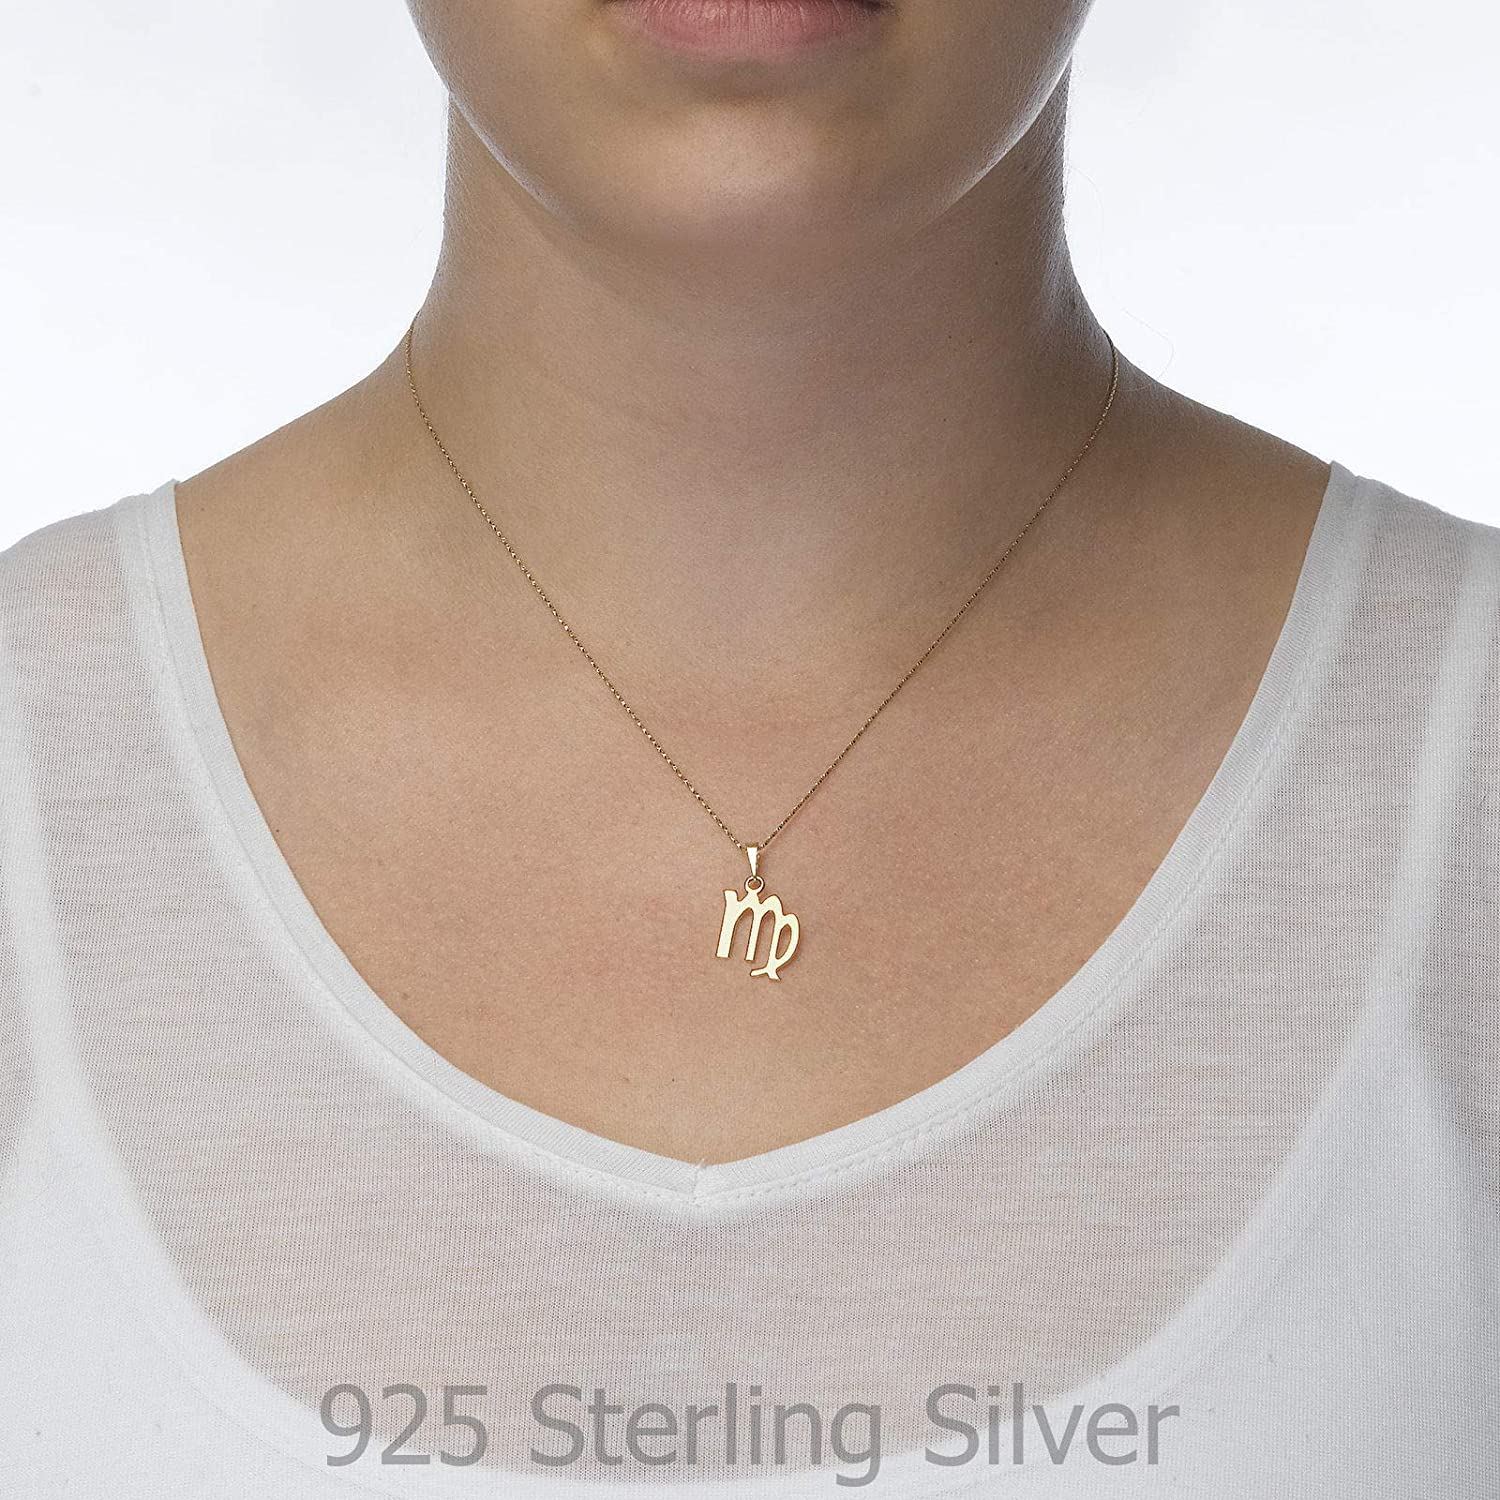 14K Yellow Gold Virgo Pendant With Necklace